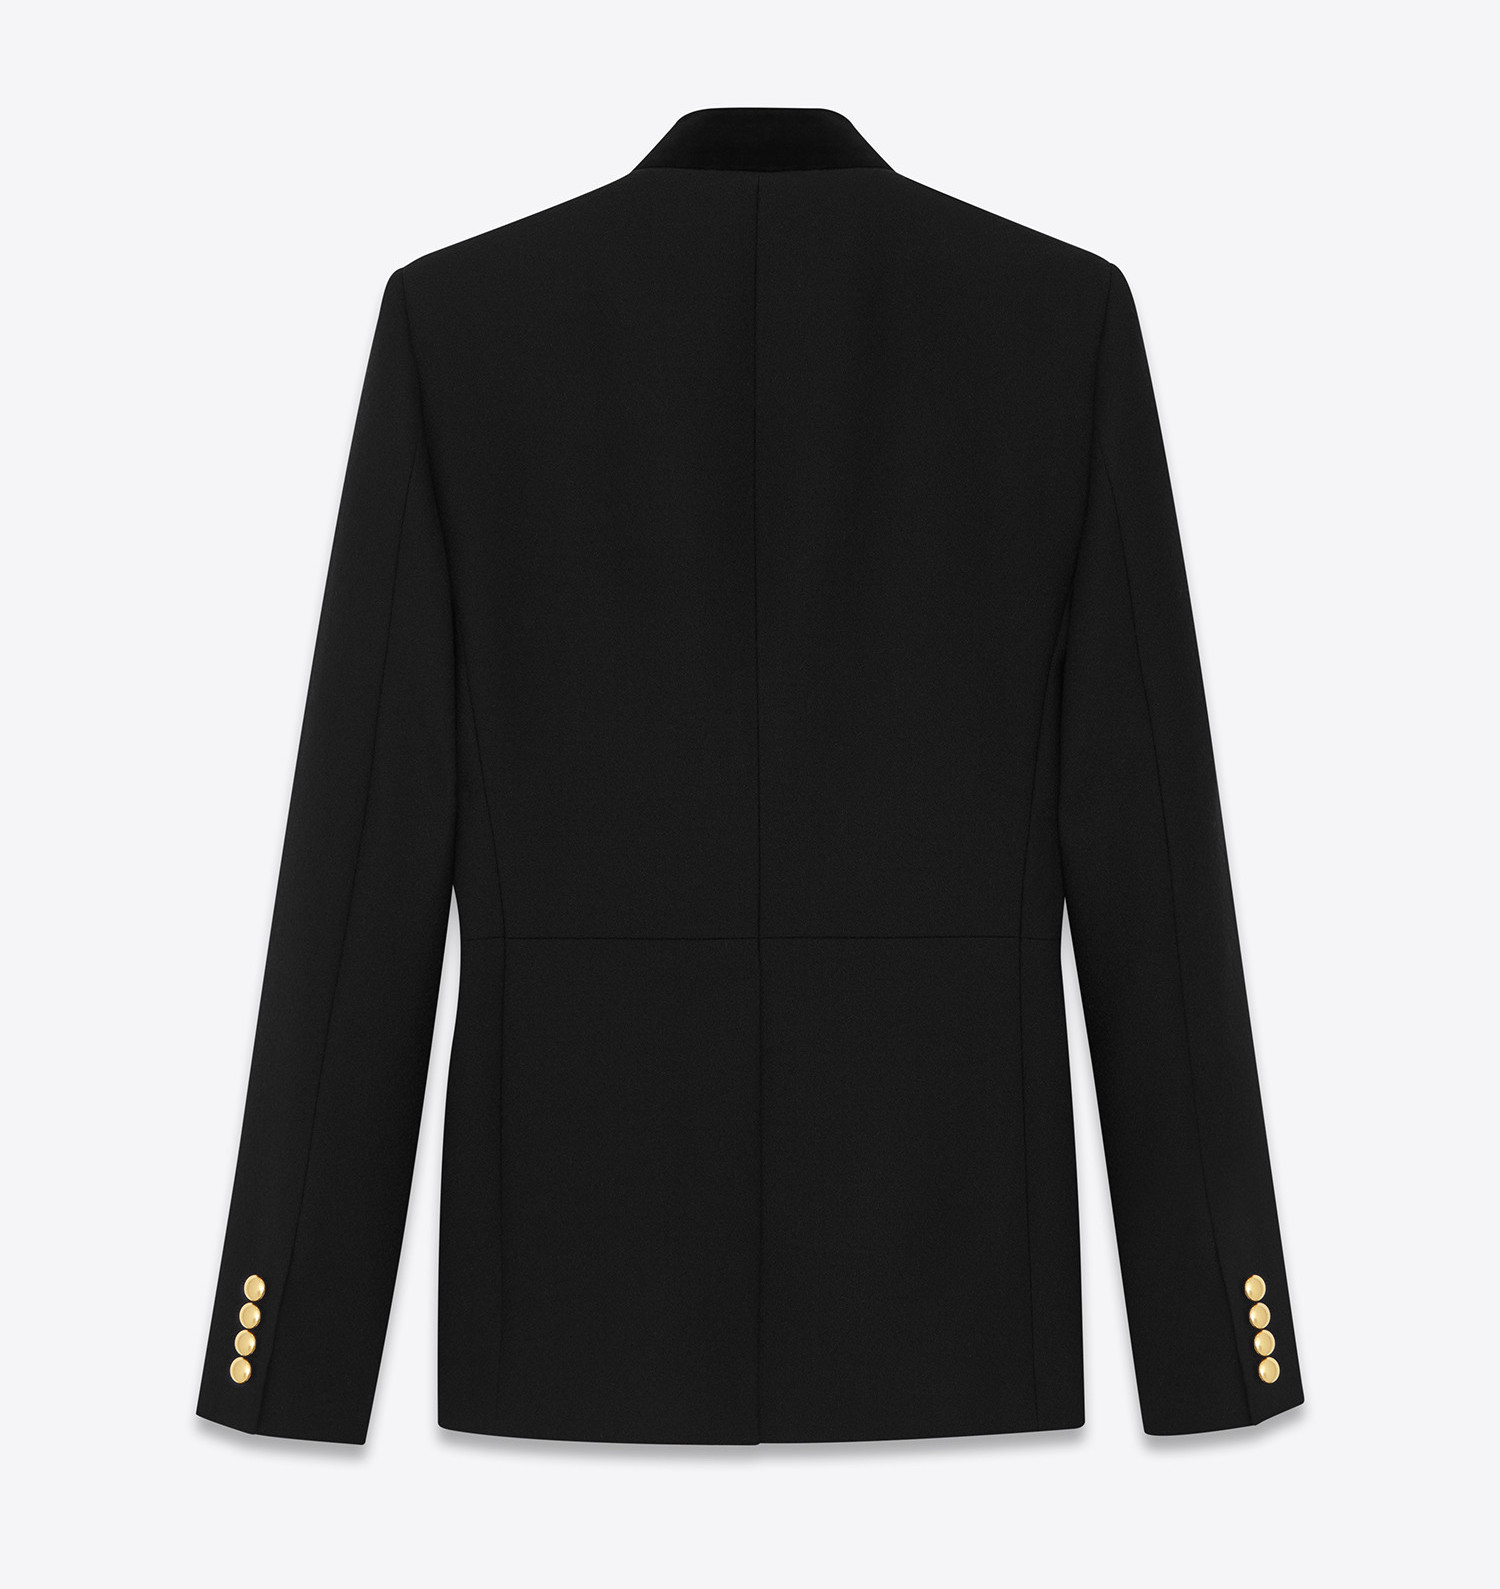 saint-laurent-long-officer-jacket-2